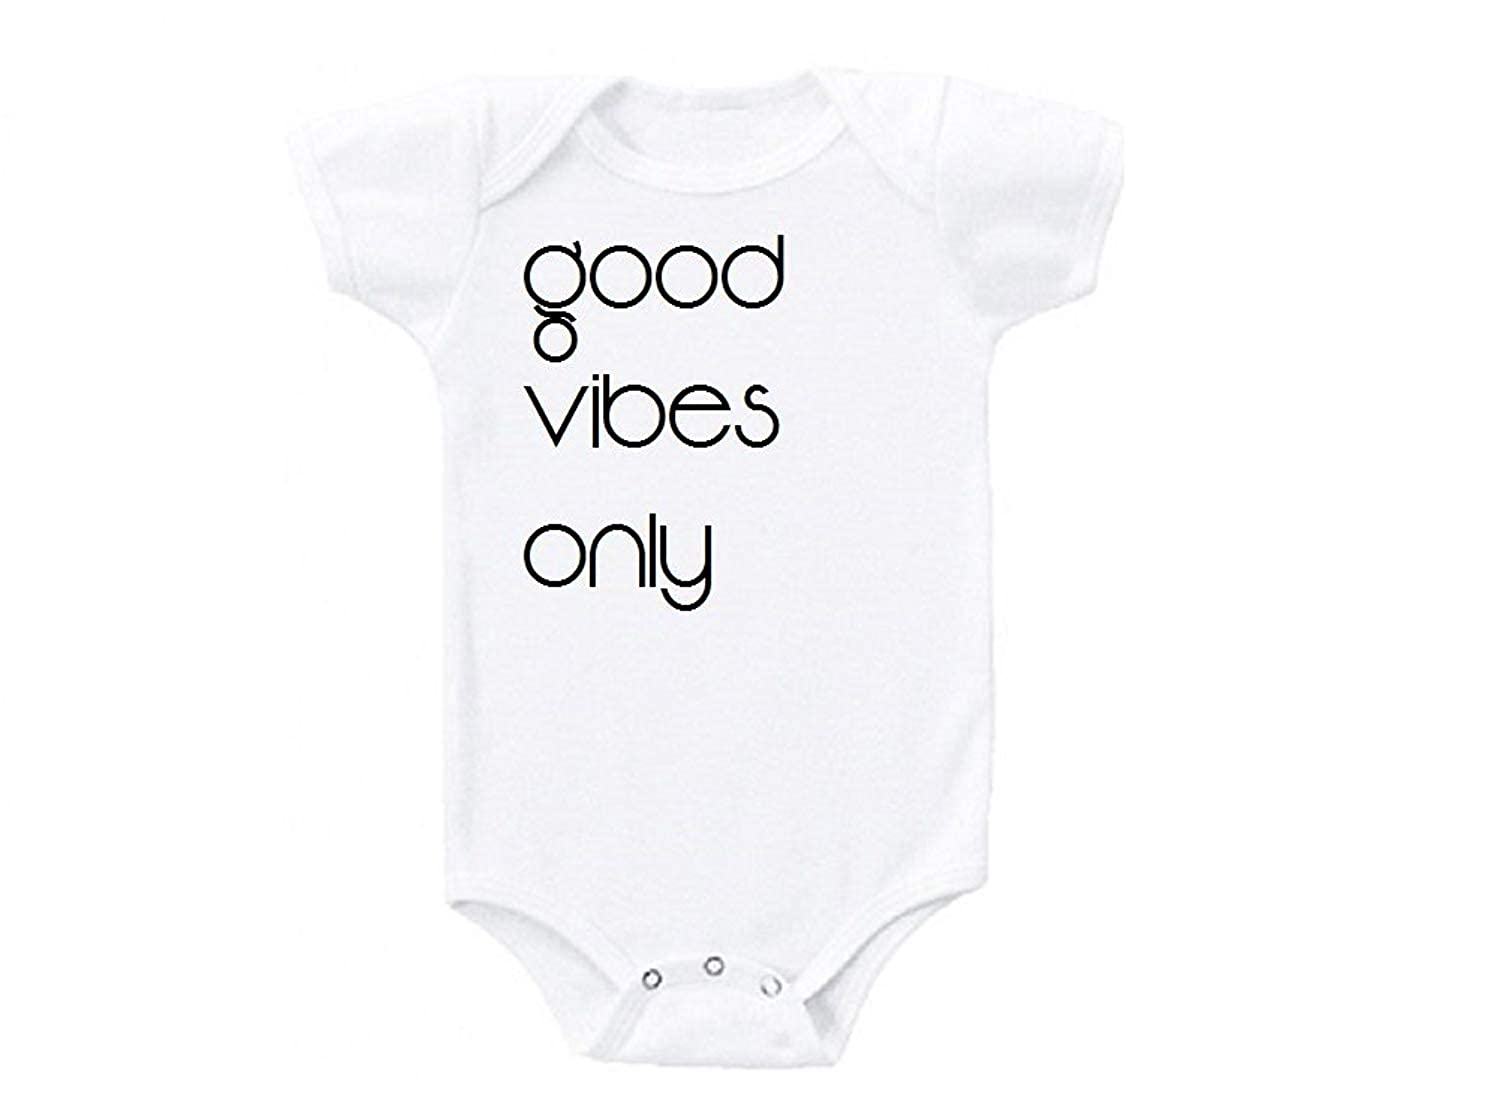 Promini Good Vibes ONLY Humor Love Cute Baby Onesie Gift Novelty Tshirt Costume Babies Bodysuit